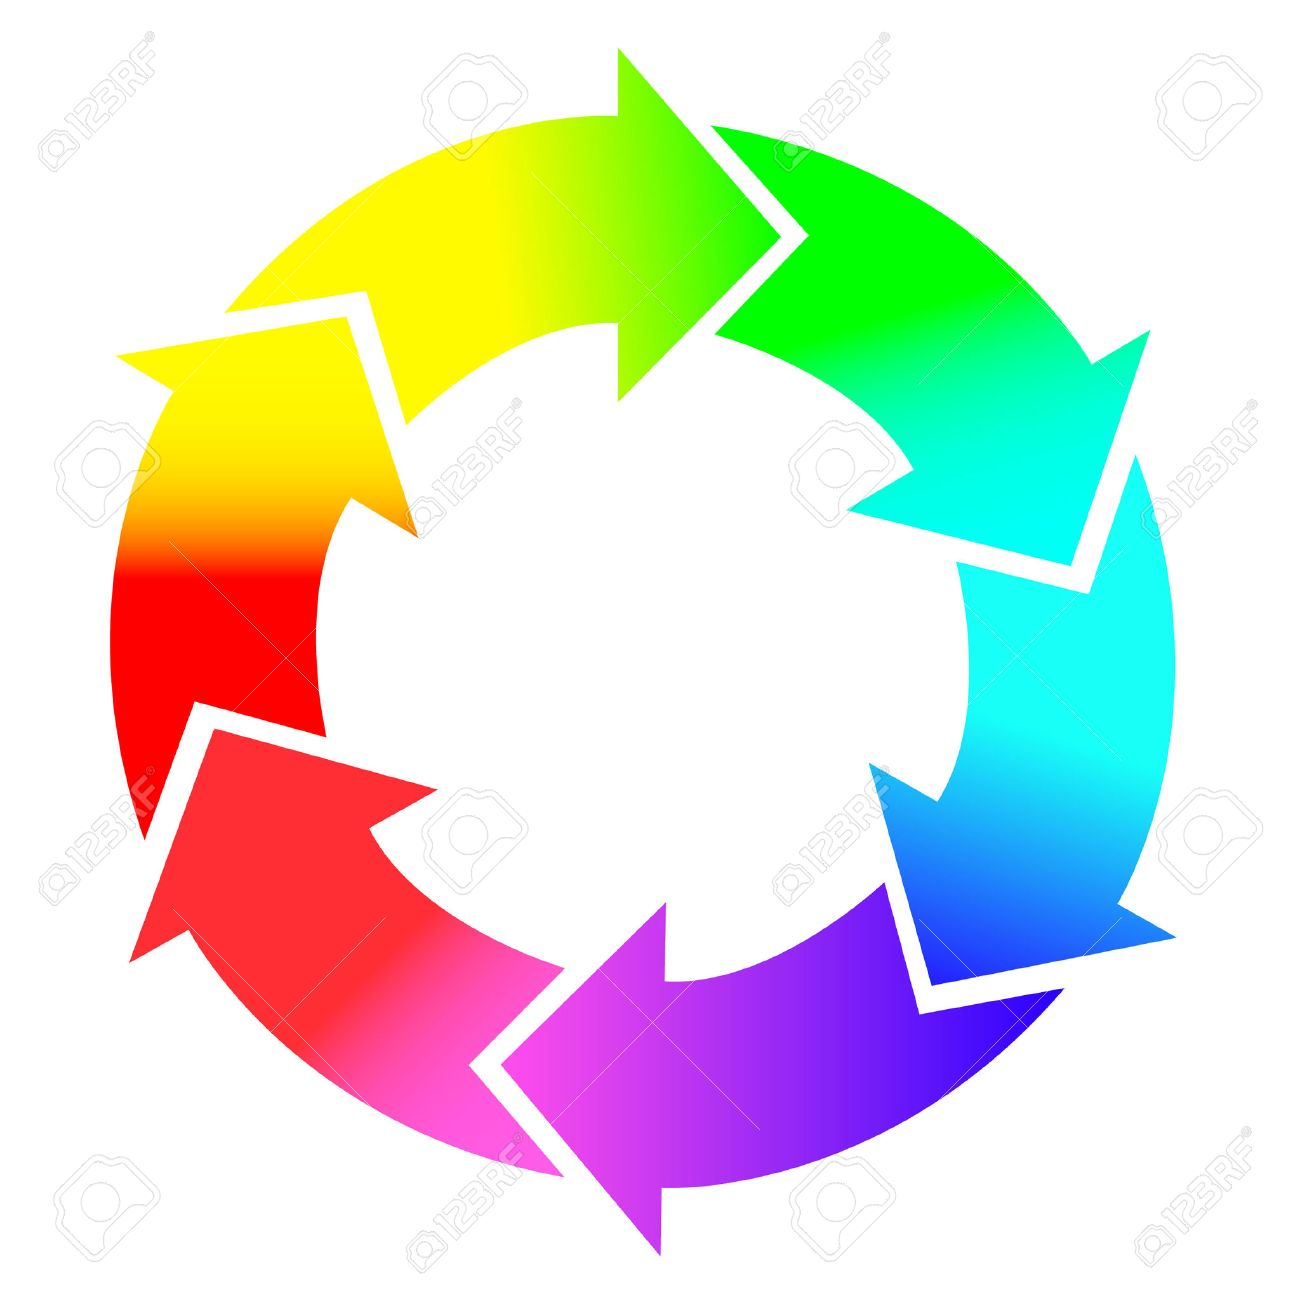 Process cycling arrow by arrow royalty free stock images image - Recycling Process Round Arrows In Rainbow Colors